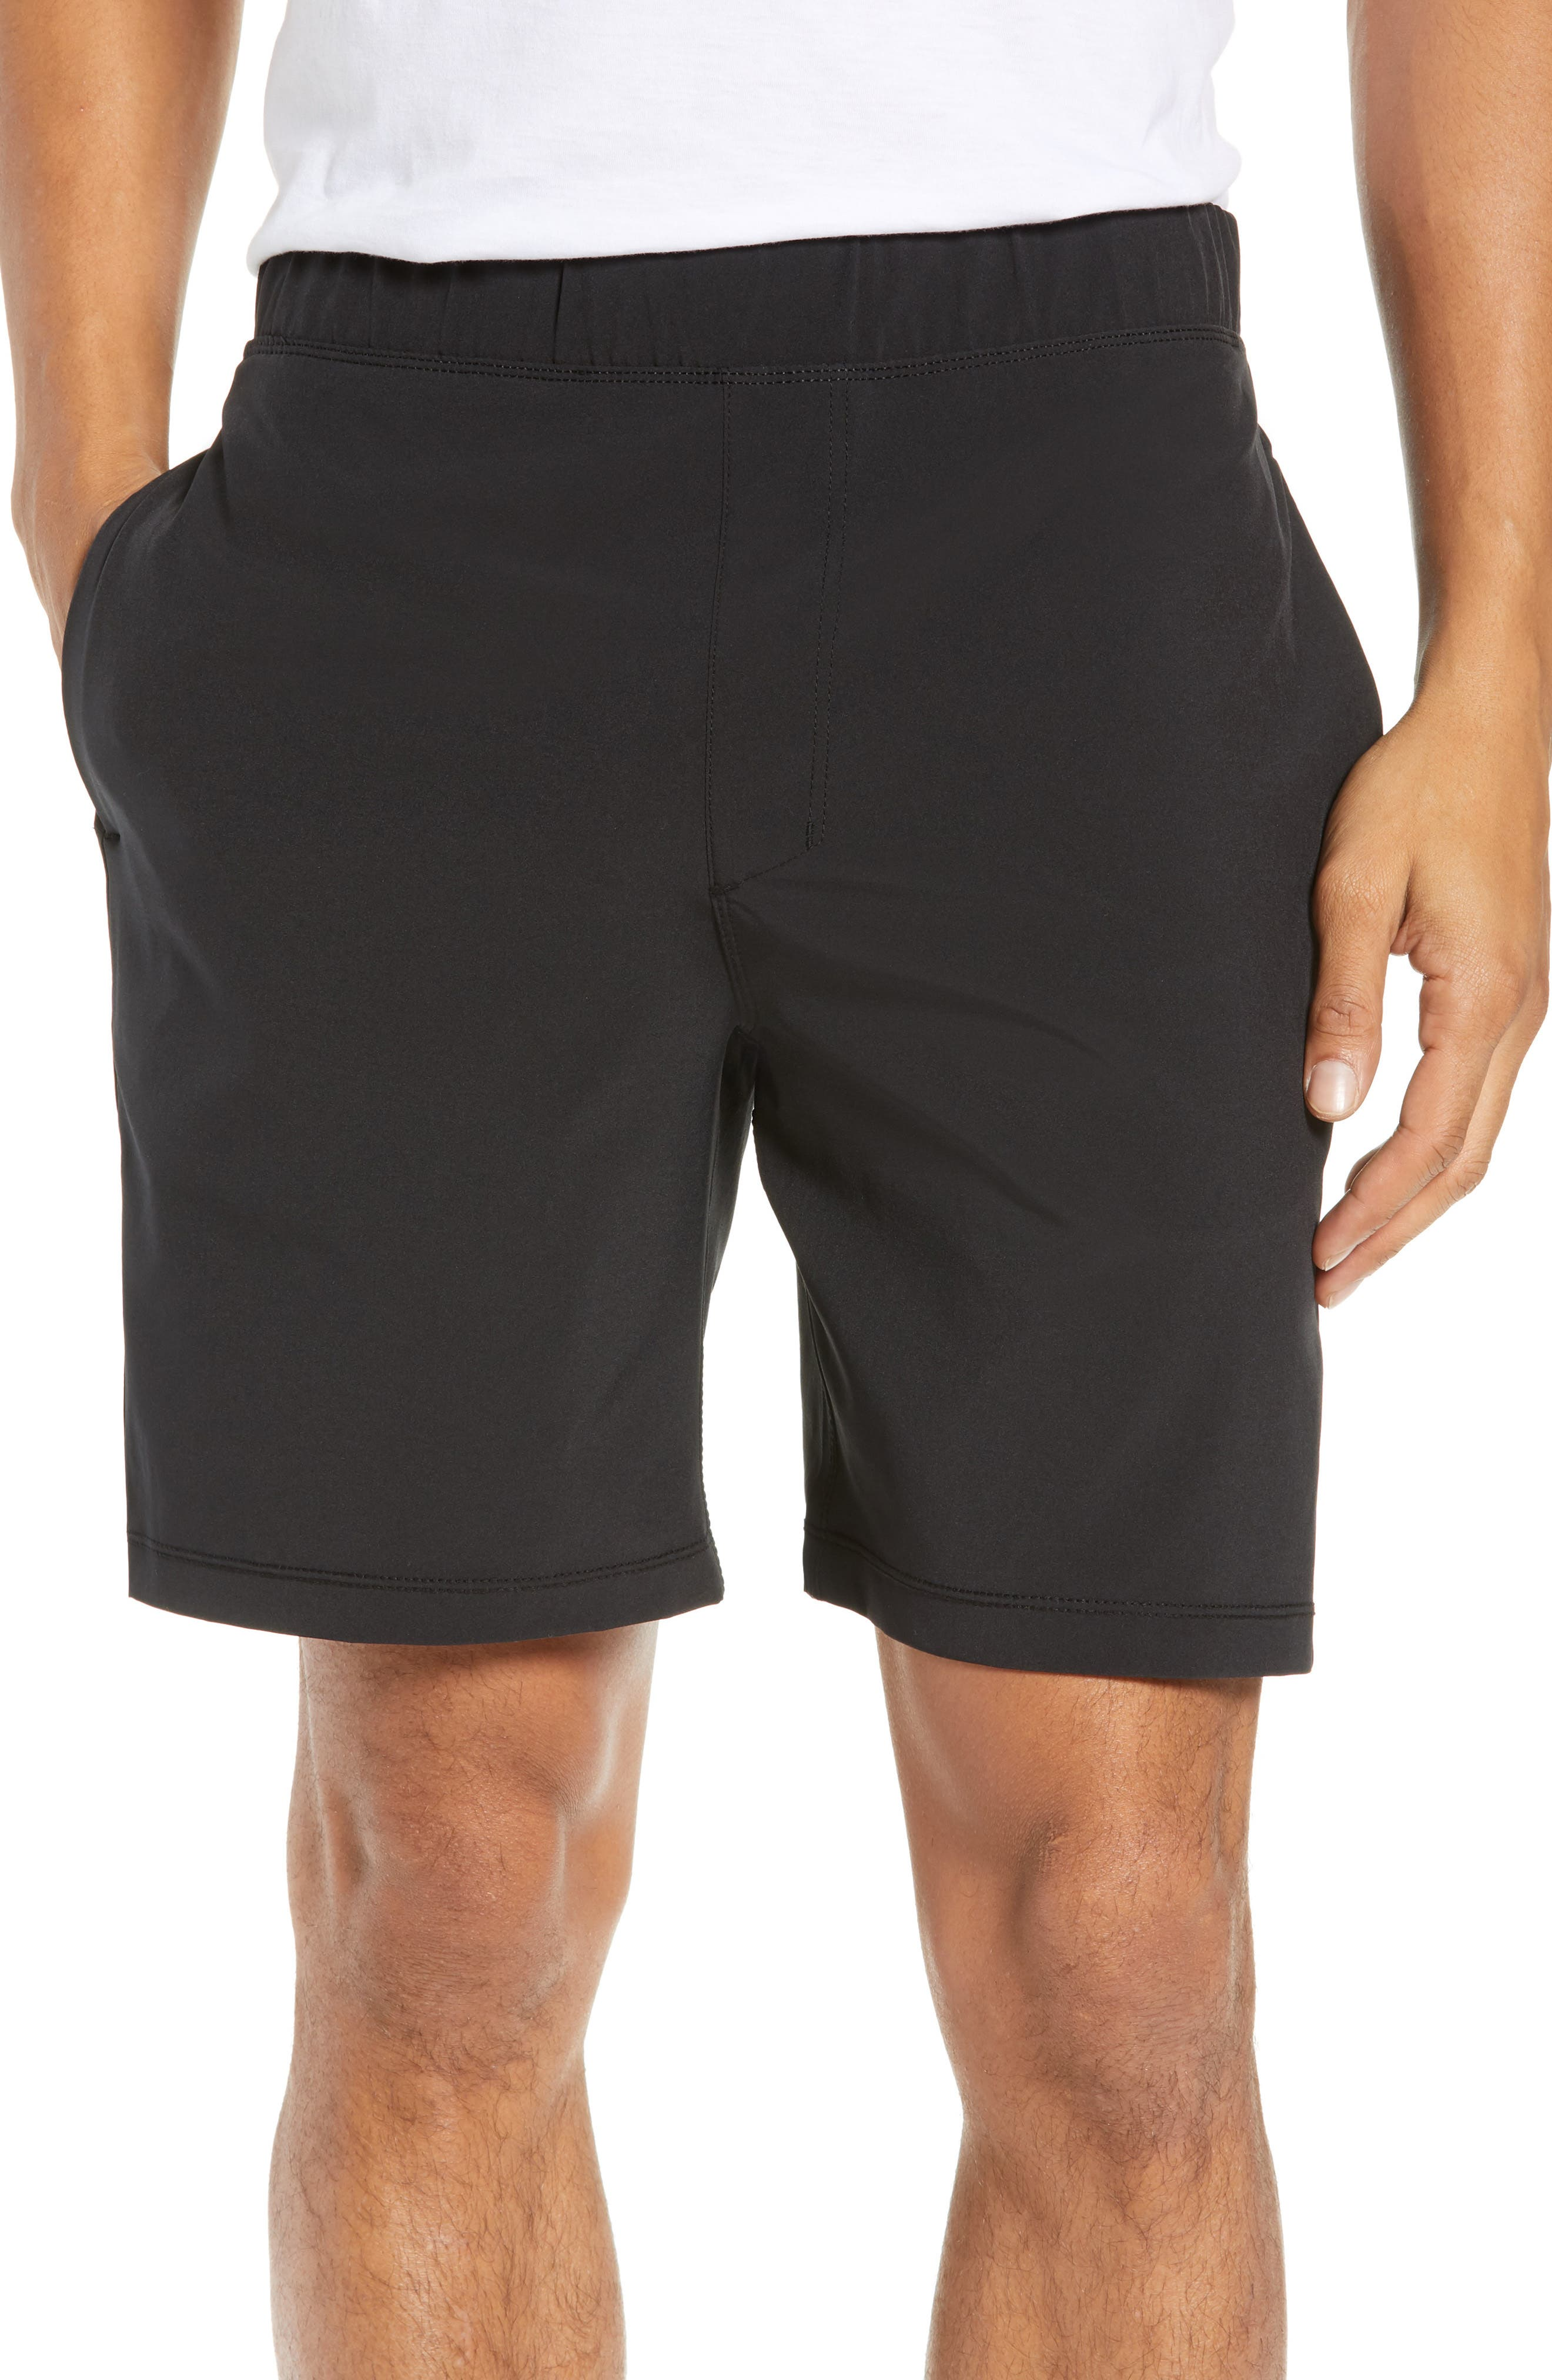 Hurley Alpha Trainer 2.0 Recycled Polyester Shorts, Black